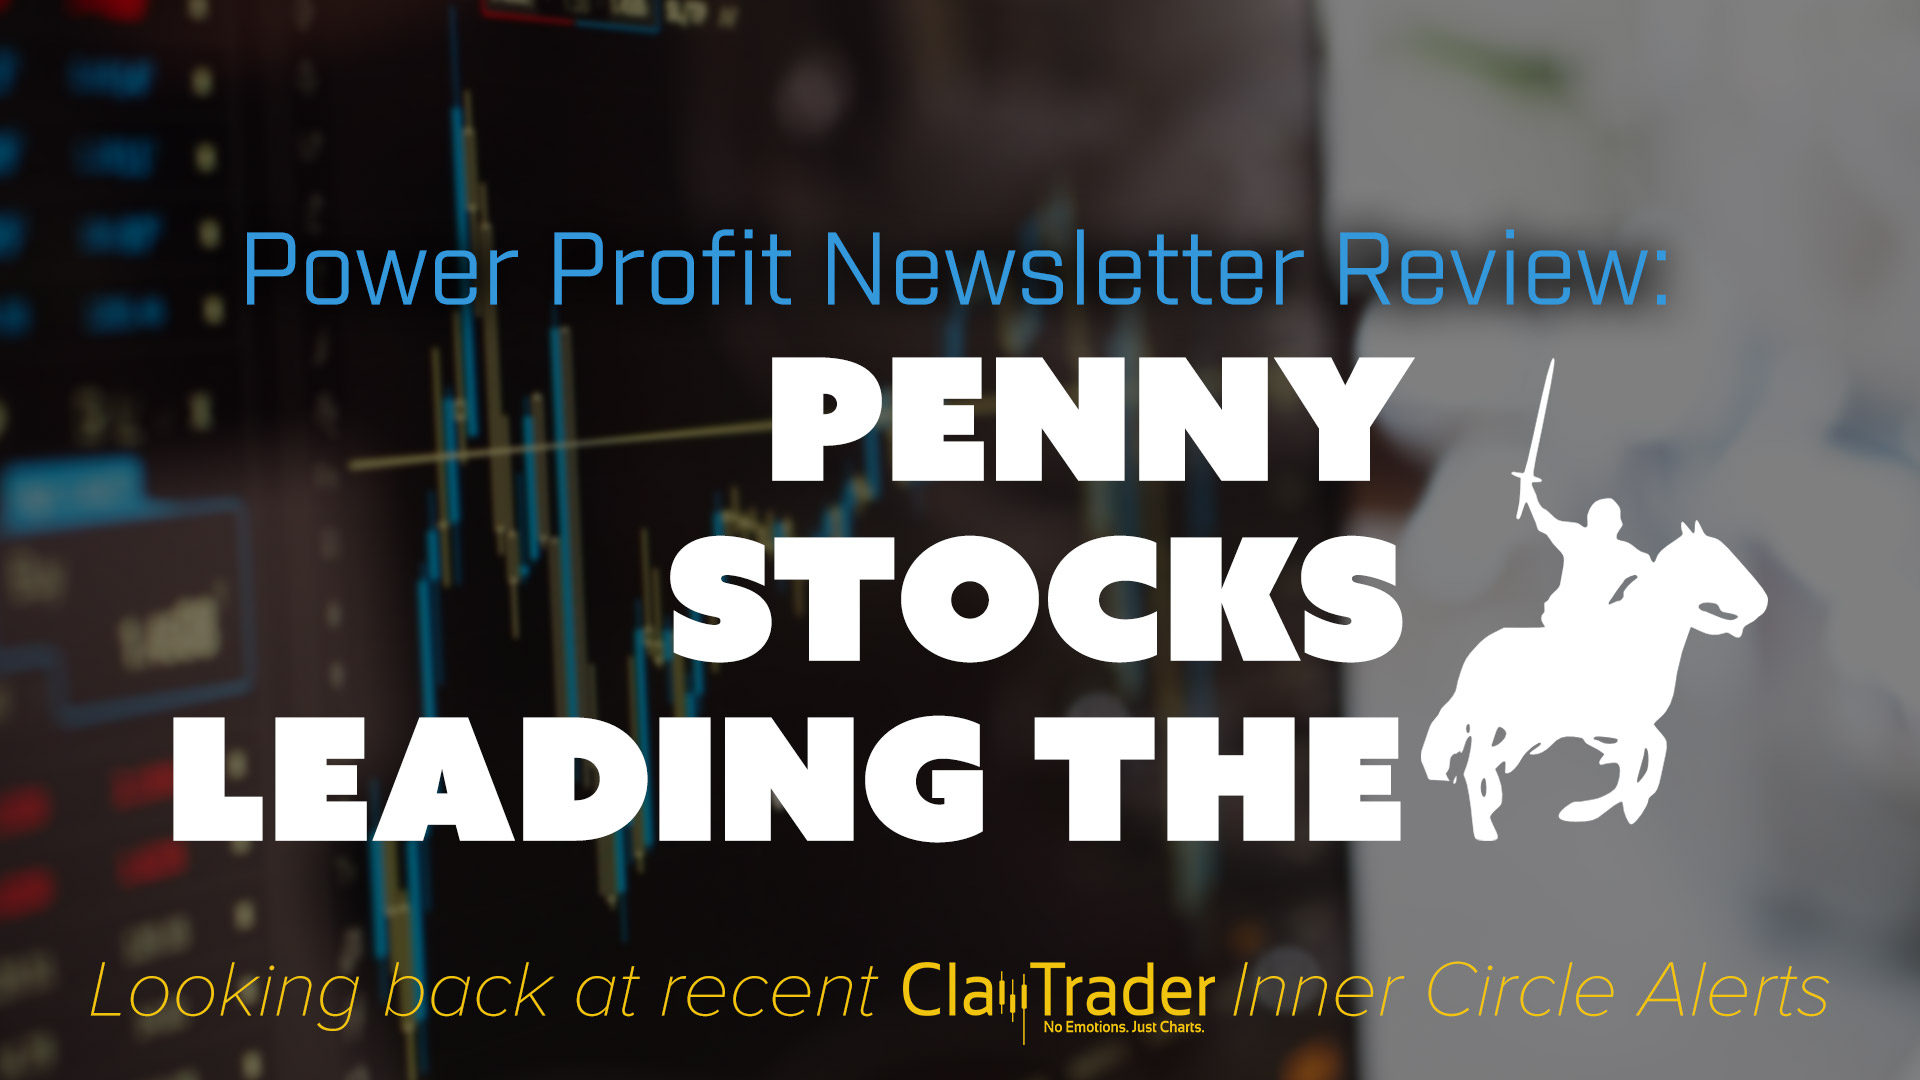 Penny Stocks Leading the Charge